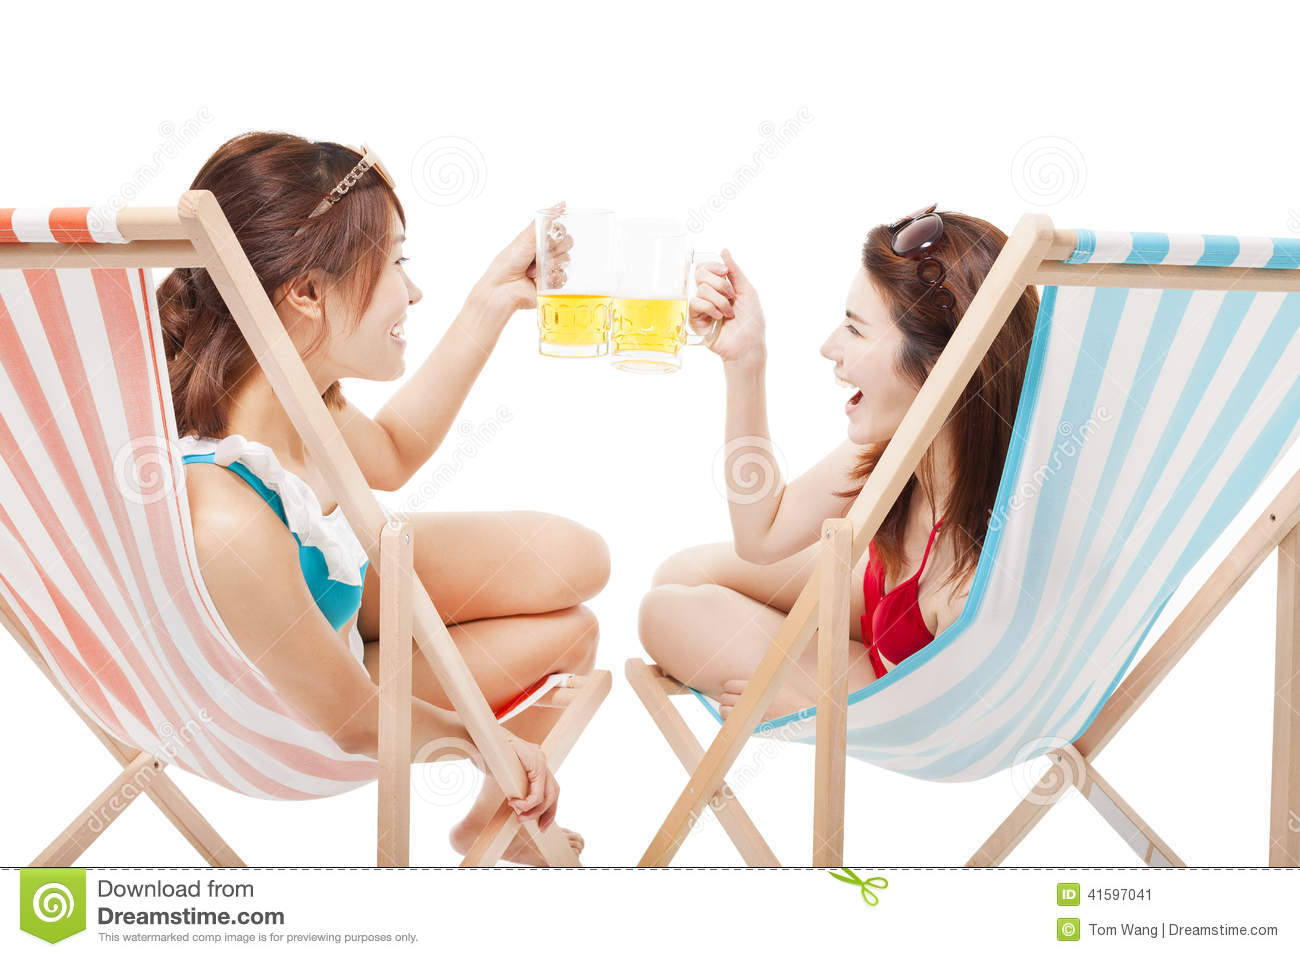 Two Sunshine Girl Holding Beer Cheers A Beach Chair Stock Image Image